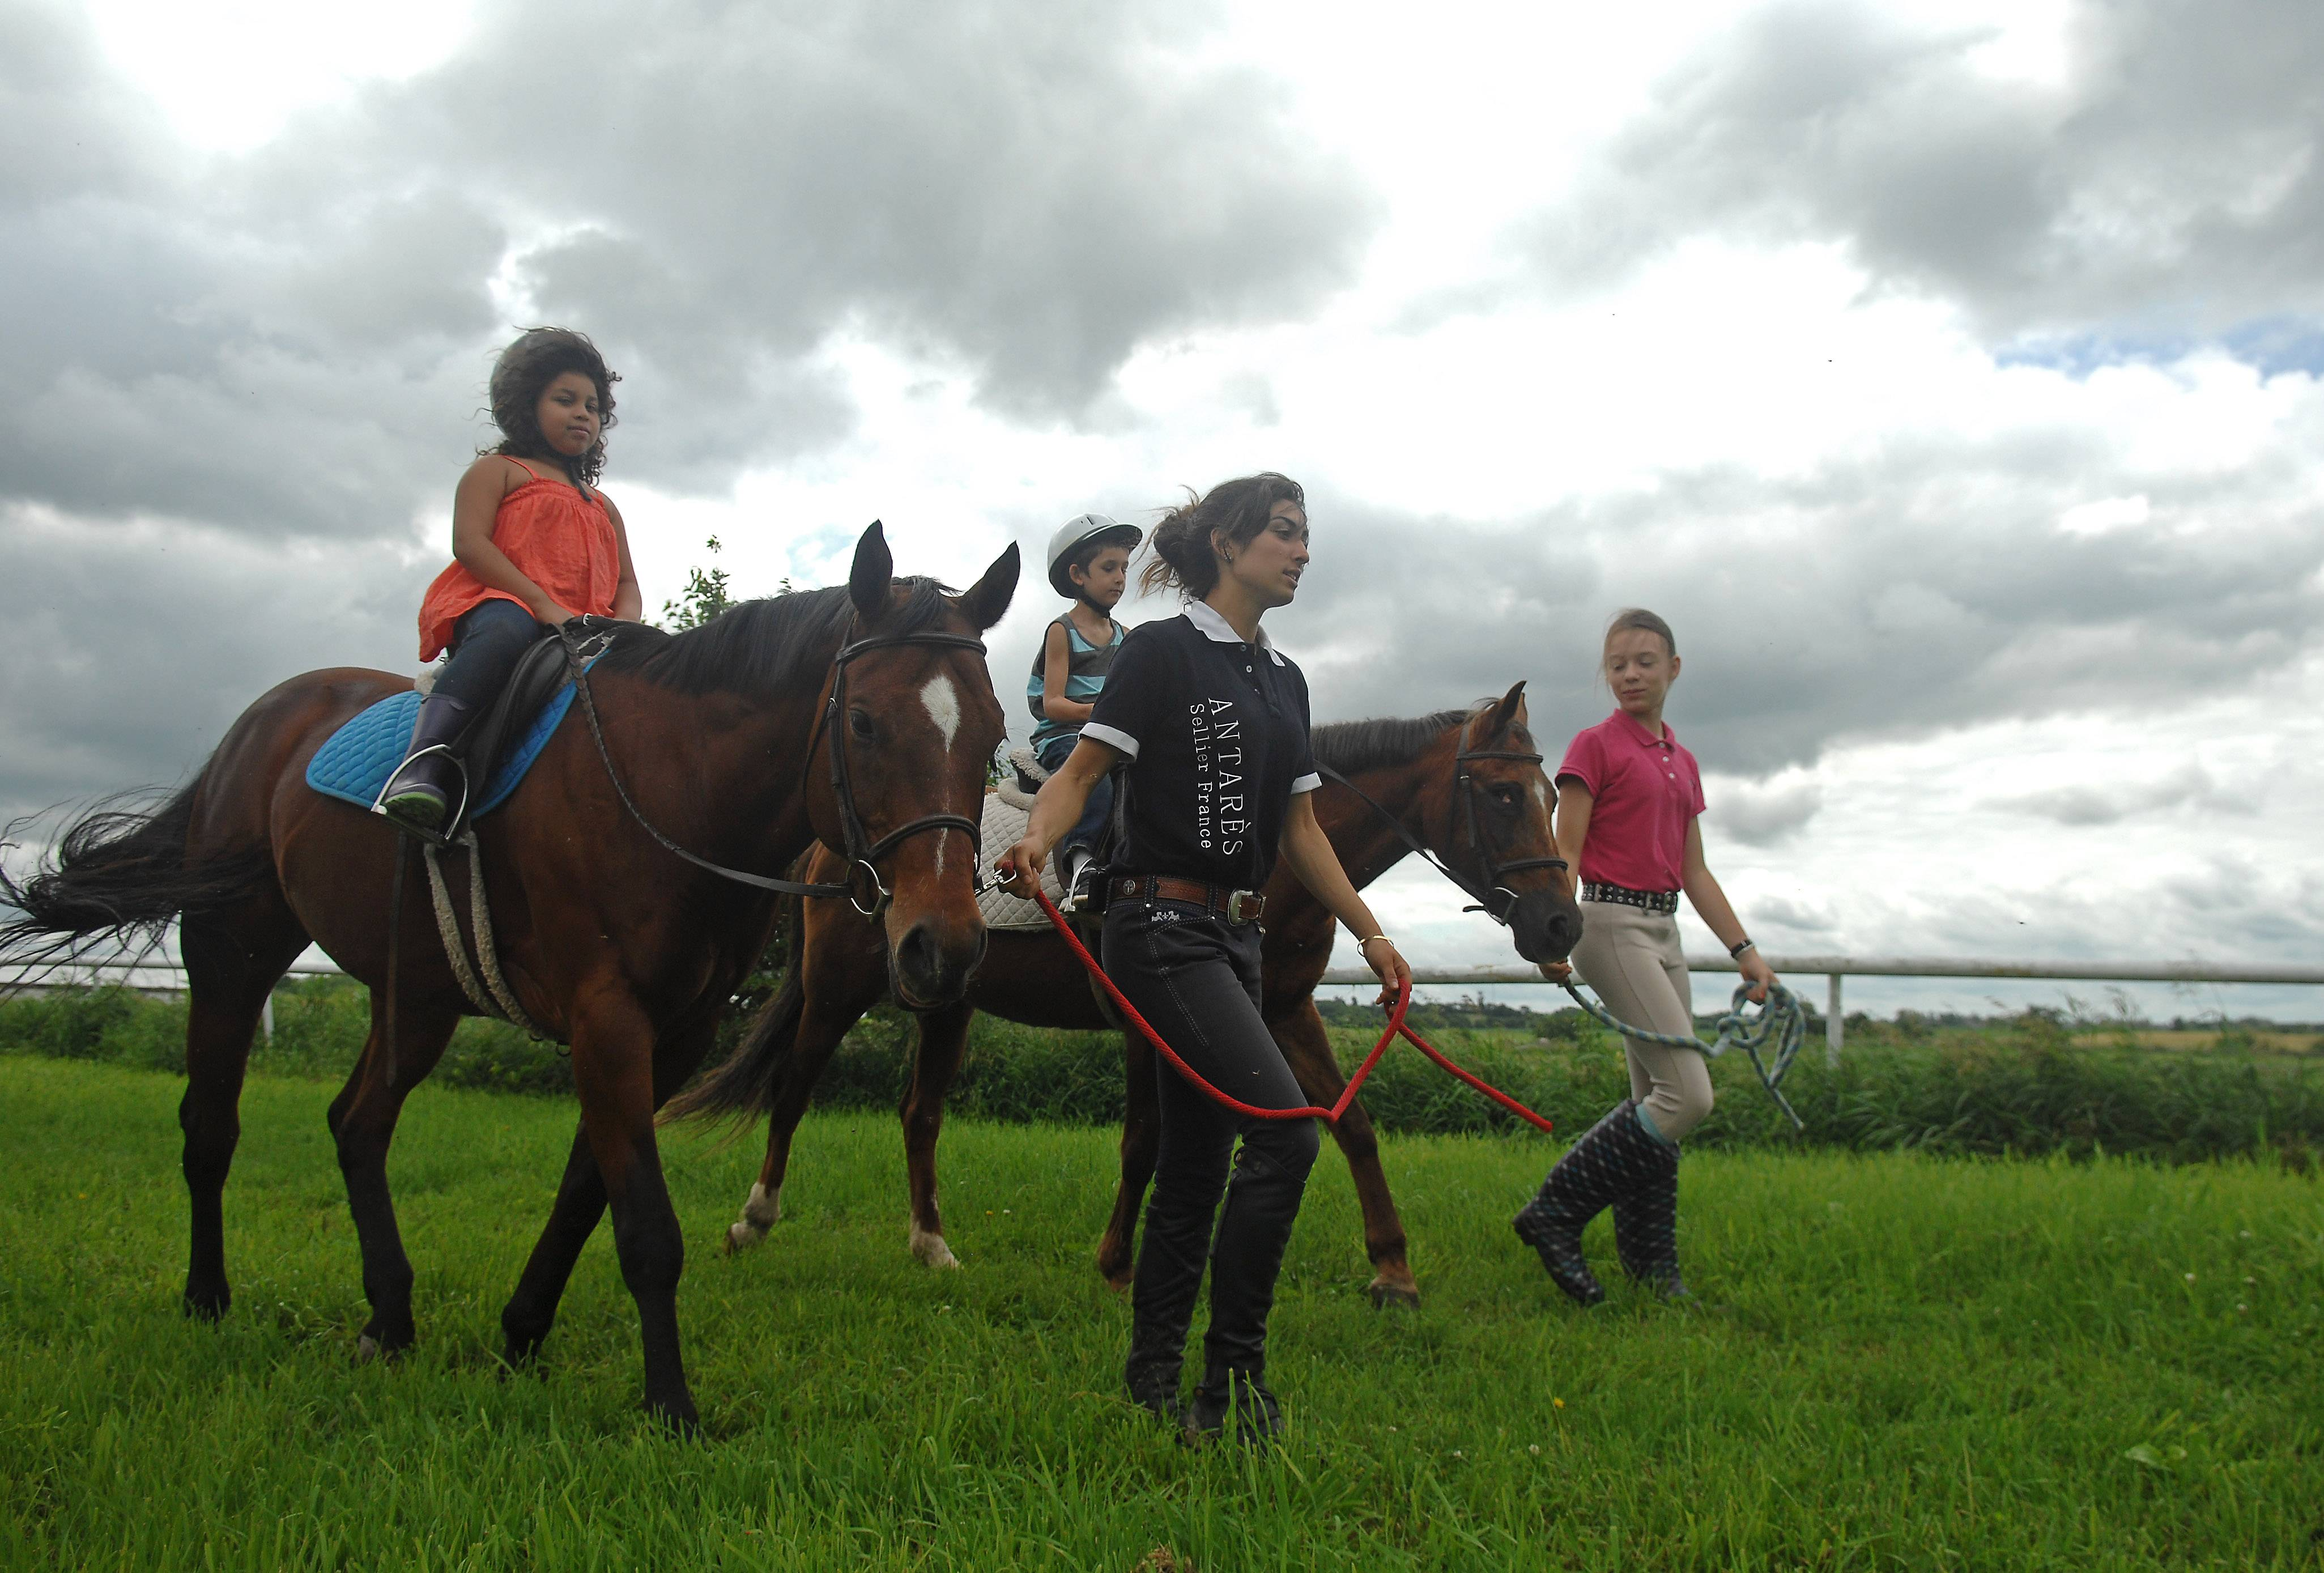 Tower Hill Stables in Hampshire offers guided trail rides that meander through fields, woods and scenic rolling hills.